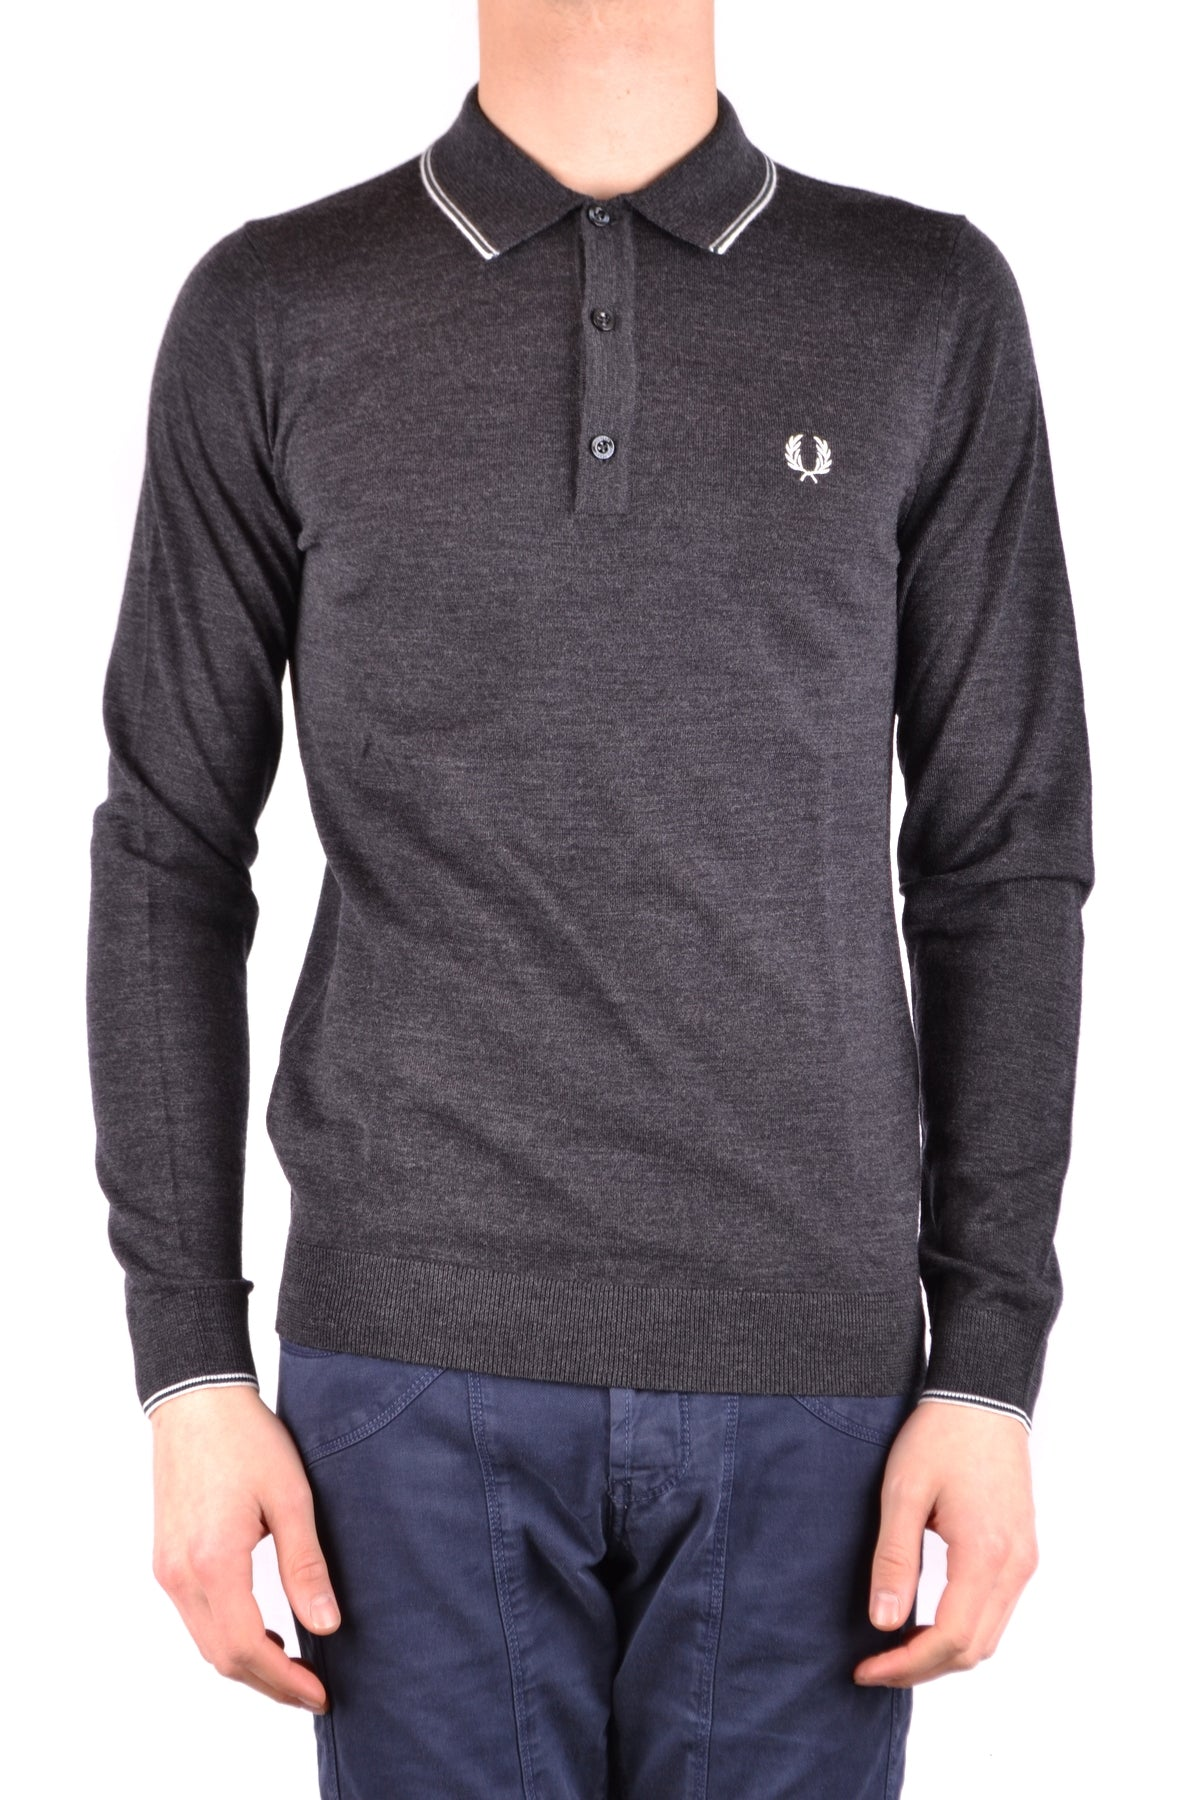 Polo Fred Perry-Polos - MAN-S-Product Details Terms: New With LabelYear: 2017Main Color: GraySeason: Fall / WinterMade In: ChinaSize: IntGender: ManClothing Type: PoleComposition: Merino Wool 100%-Keyomi-Sook